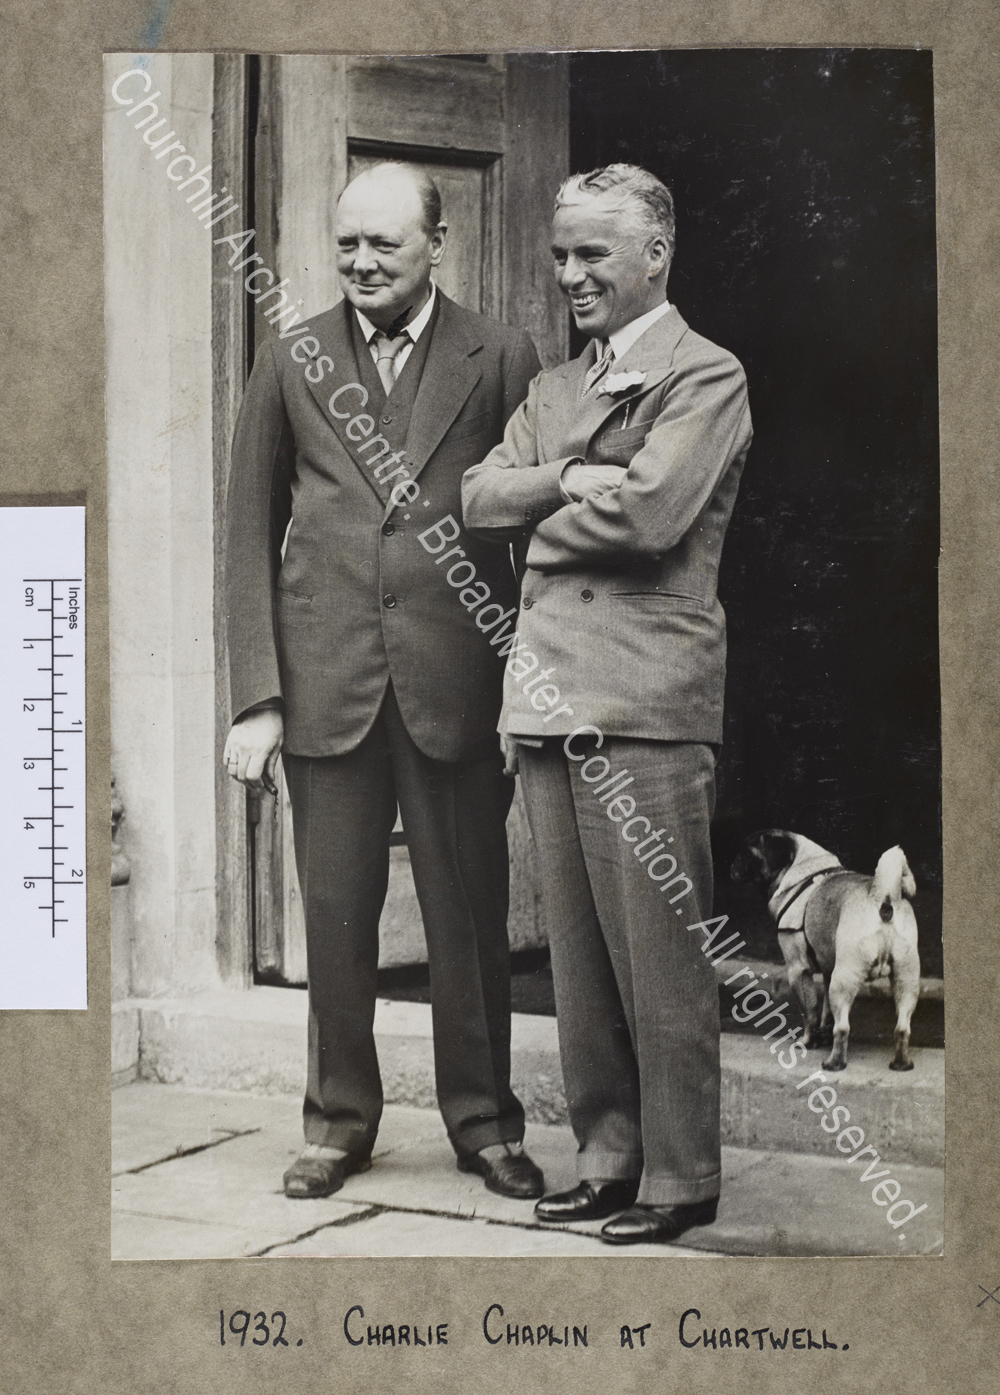 Full length photograph of WSC standing with Chaplin in the doorway at Chartwell [Kent].  They are both smiling and looking to the left